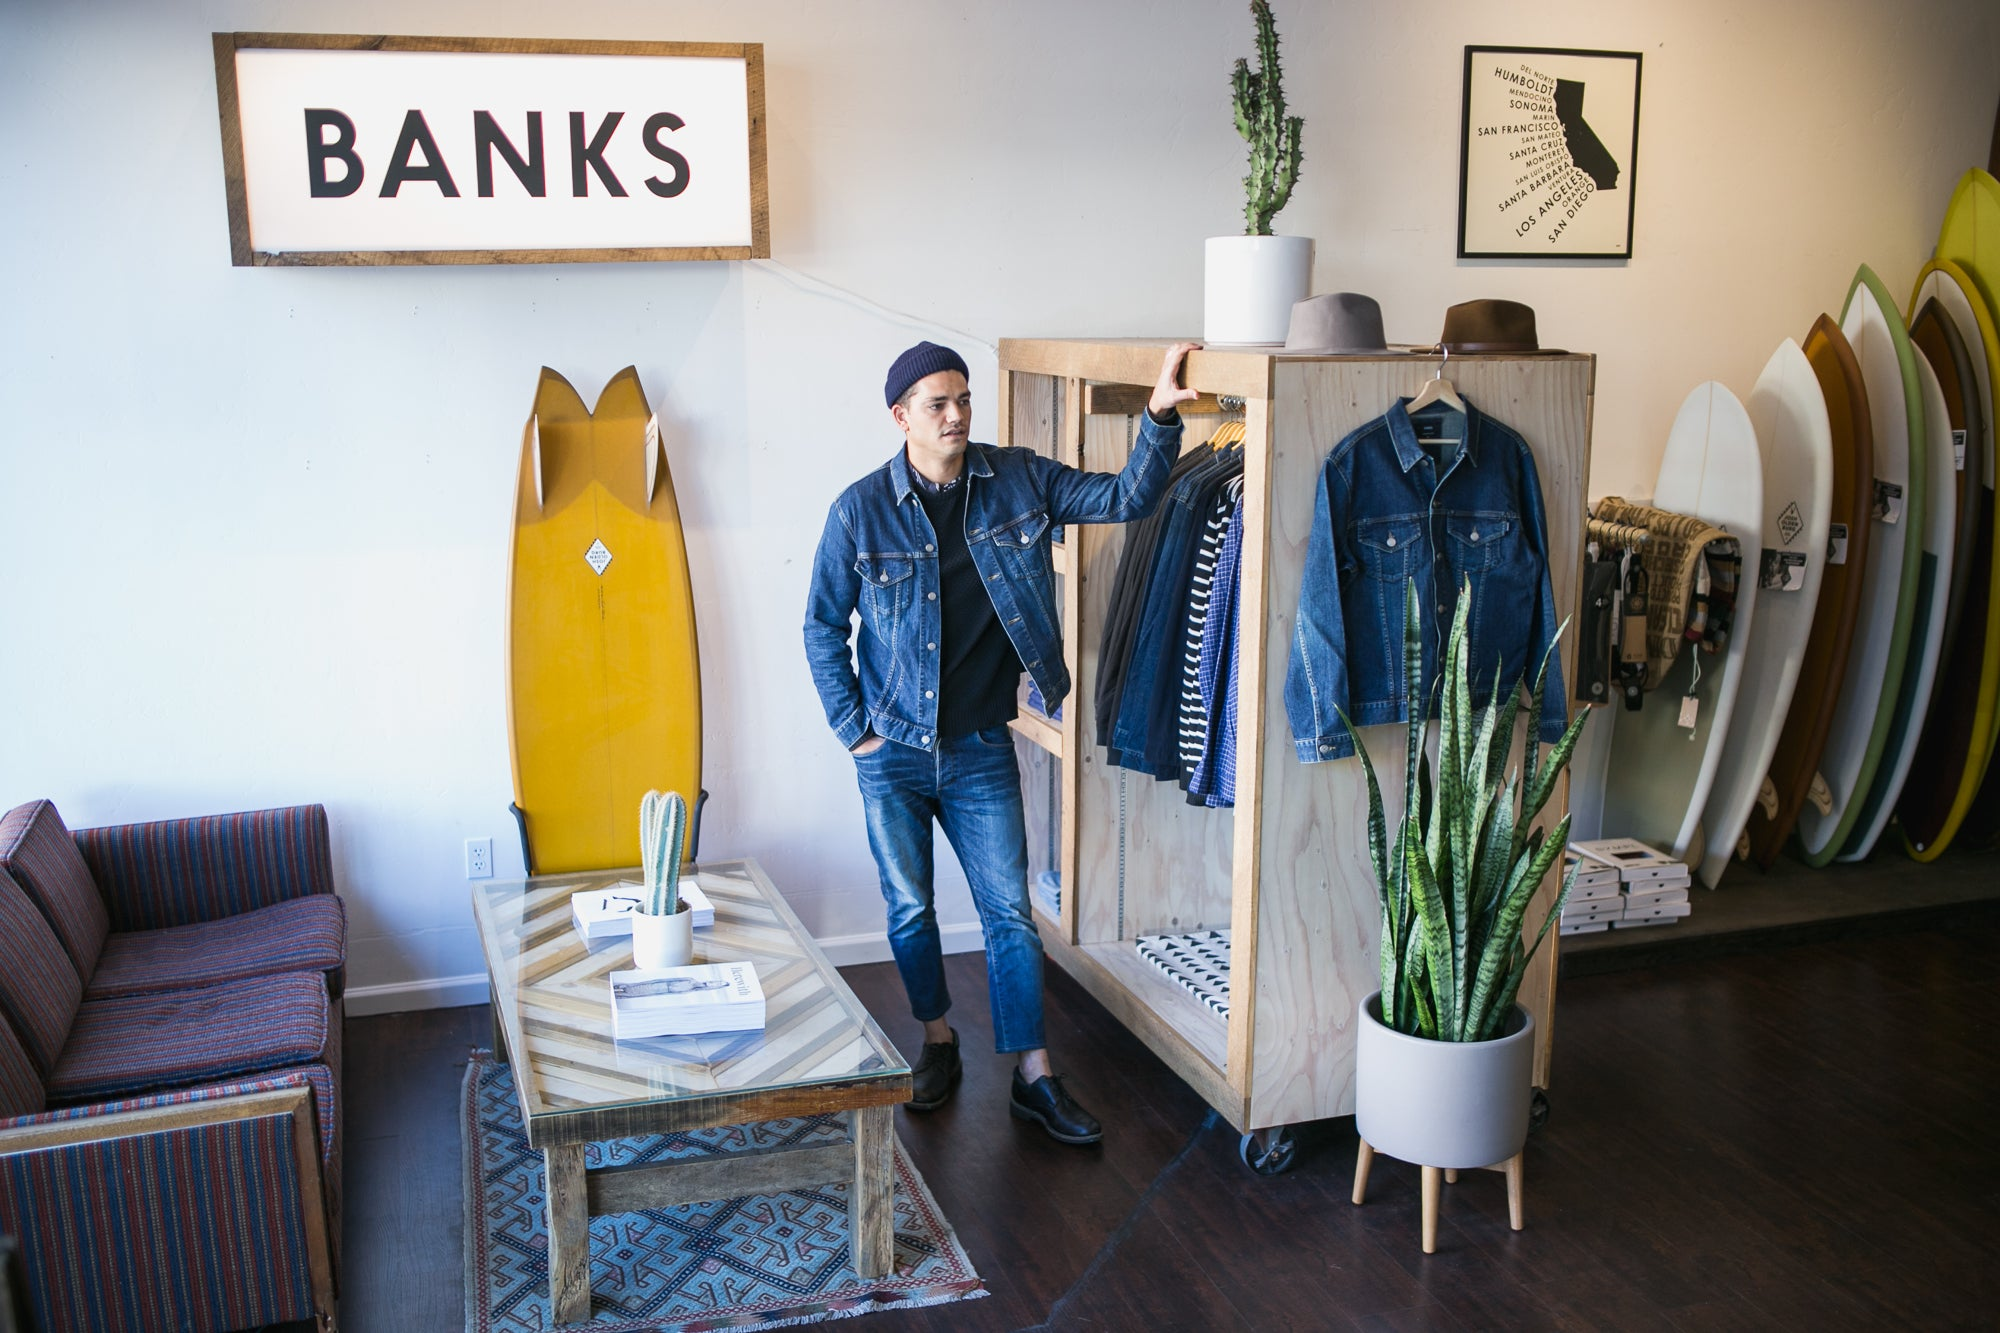 Banks Pop Up at Aloha Beach Club